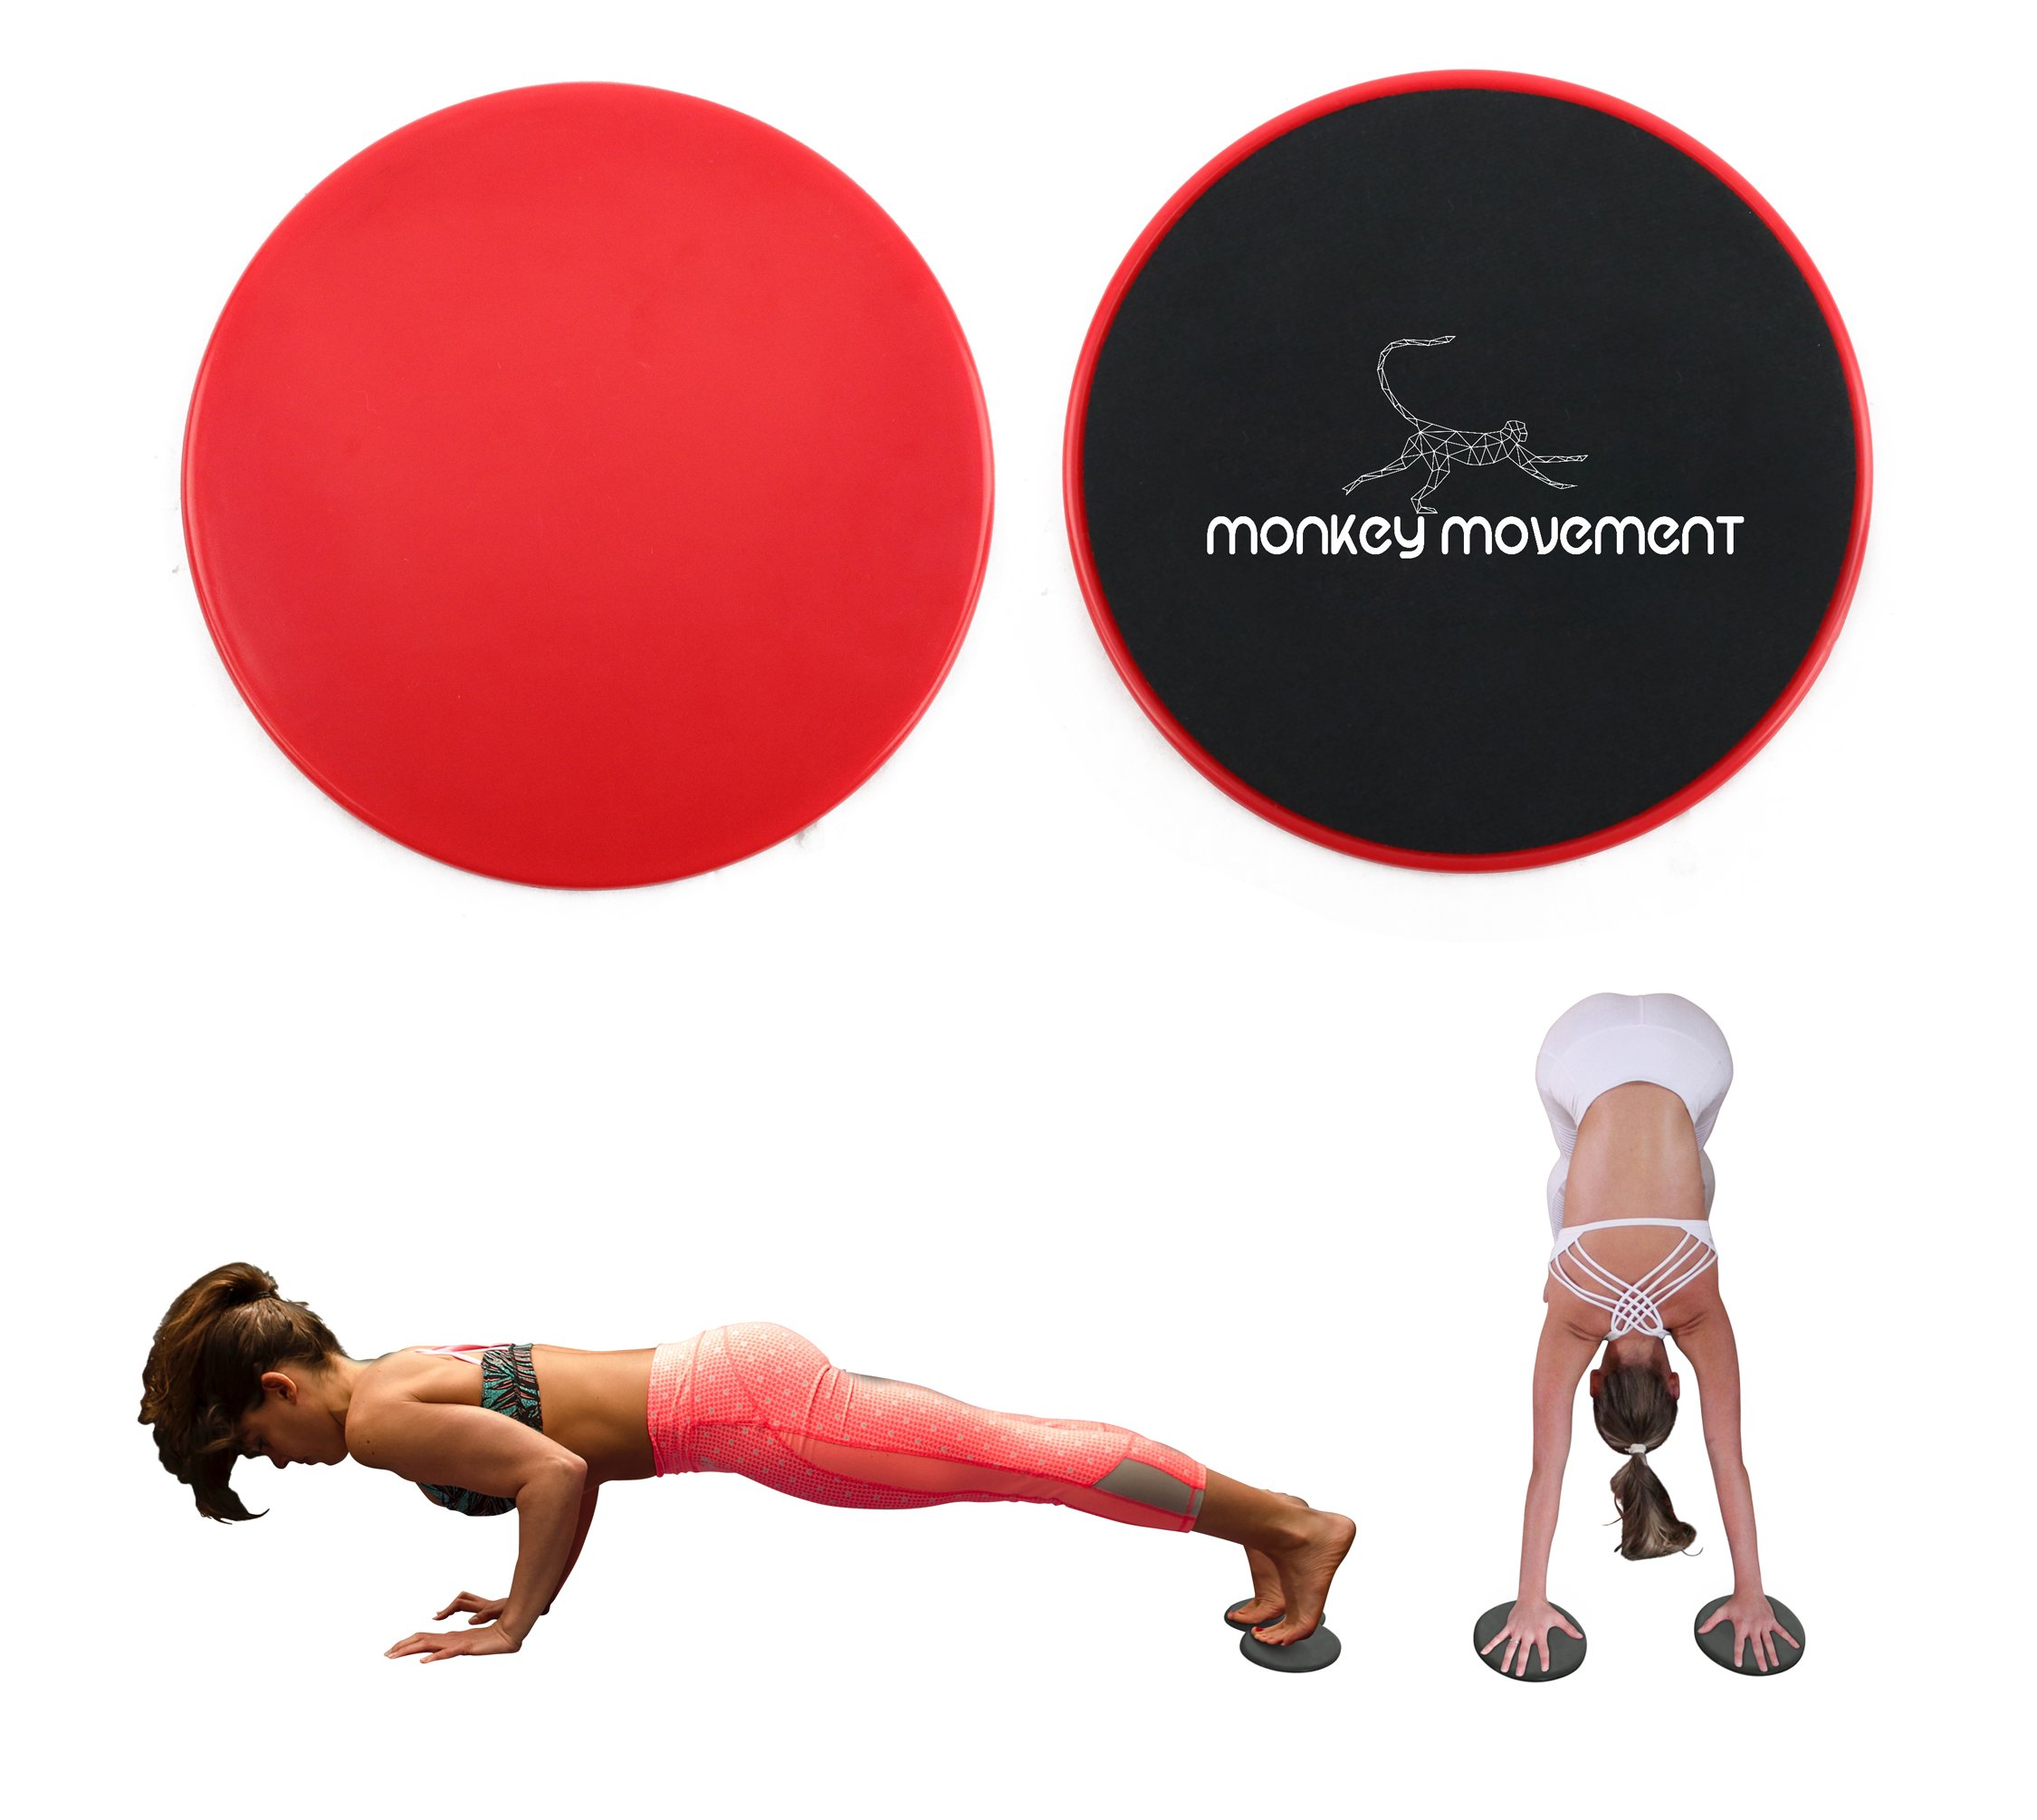 Exercise Sliders Fitness Discs - Workout Equipment for Legs, Glutes, Butt, Abs - Perfect Portable Glider for Strength Workouts at Home or Travel - Works on Carpet, Hardwood, Tiles